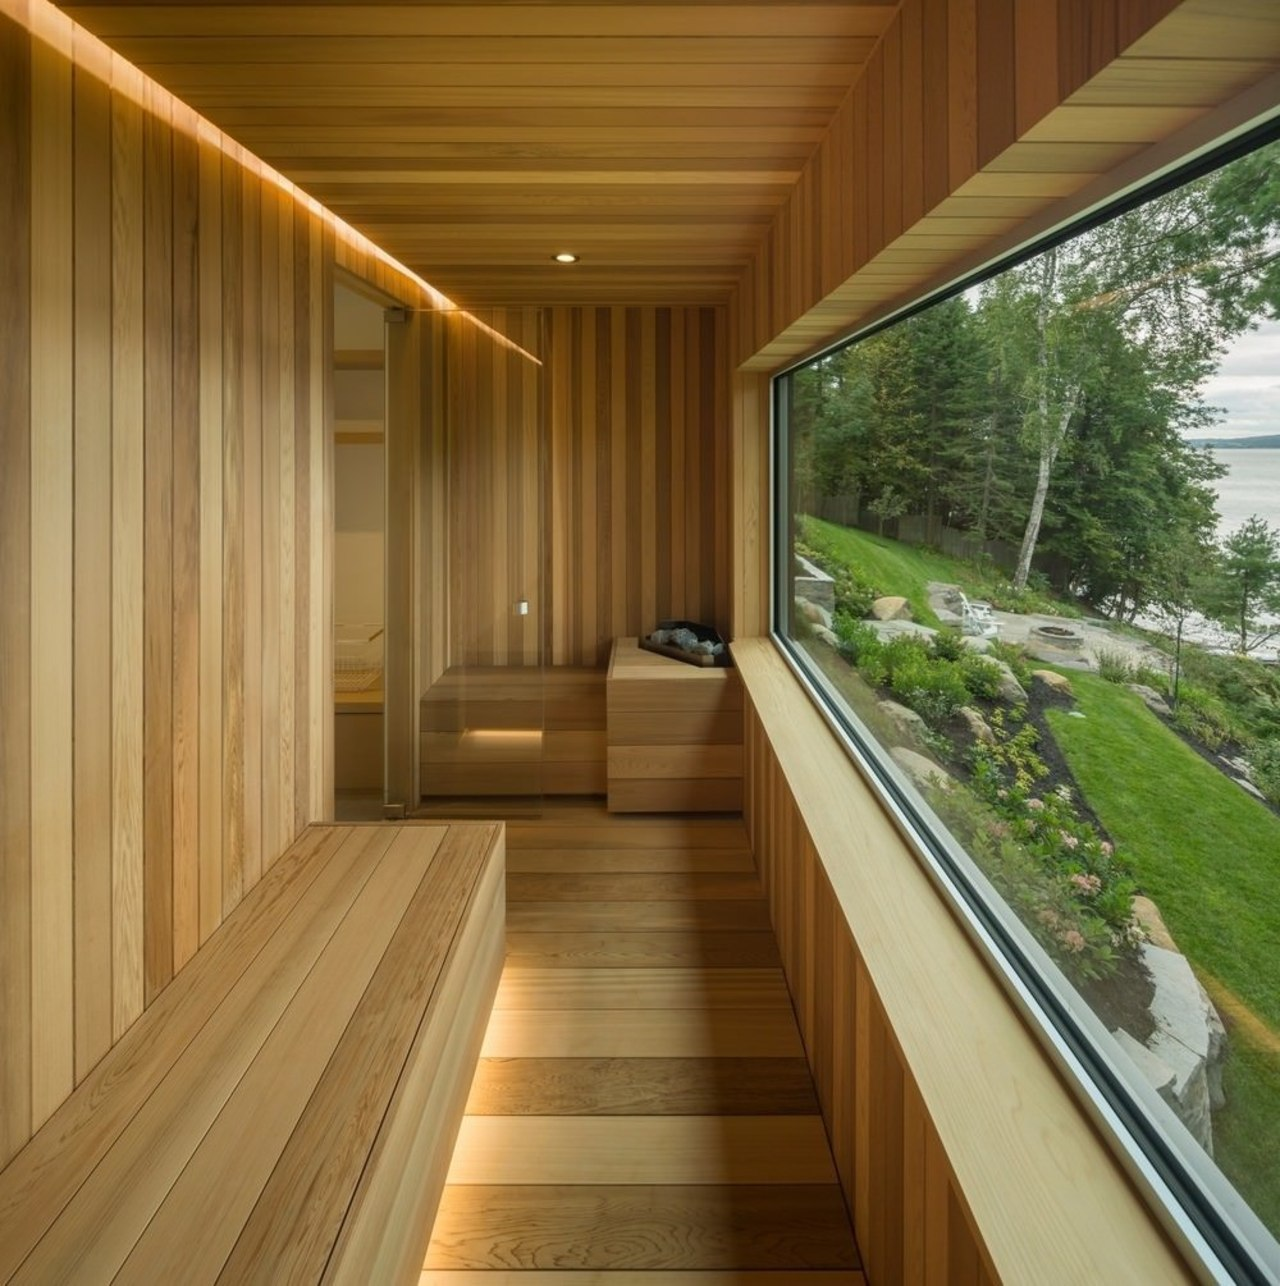 A sauna with a window and recessed lighting architecture, daylighting, deck, home, house, interior design, real estate, wood, brown